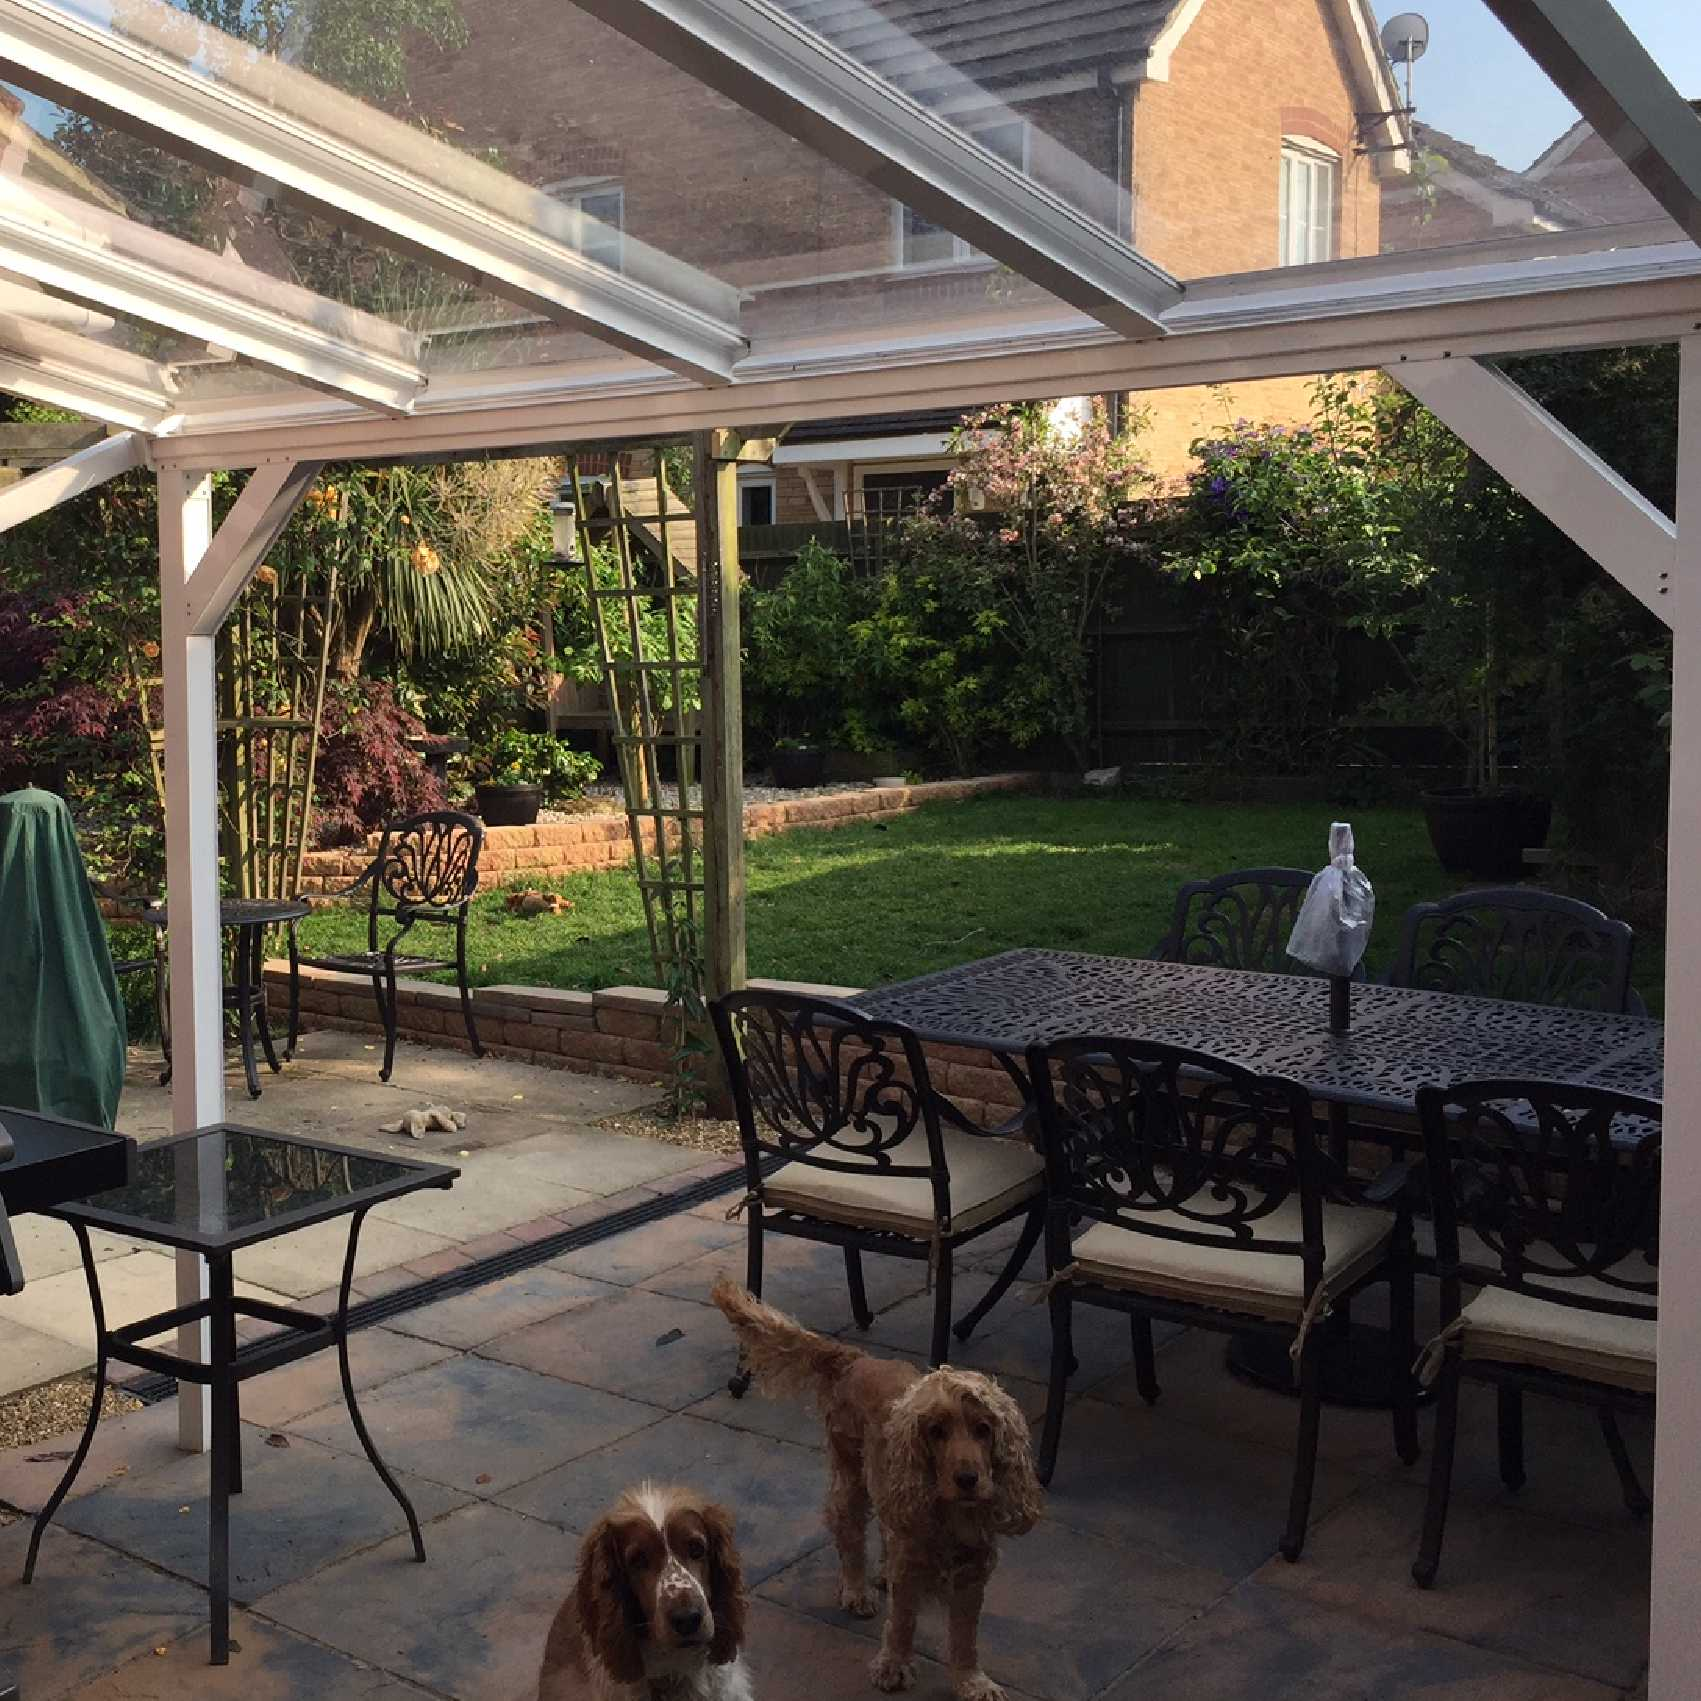 Affordable Omega Smart White Lean-To Canopy with 6mm Glass Clear Plate Polycarbonate Glazing - 4.2m (W) x 3.0m (P), (3) Supporting Posts